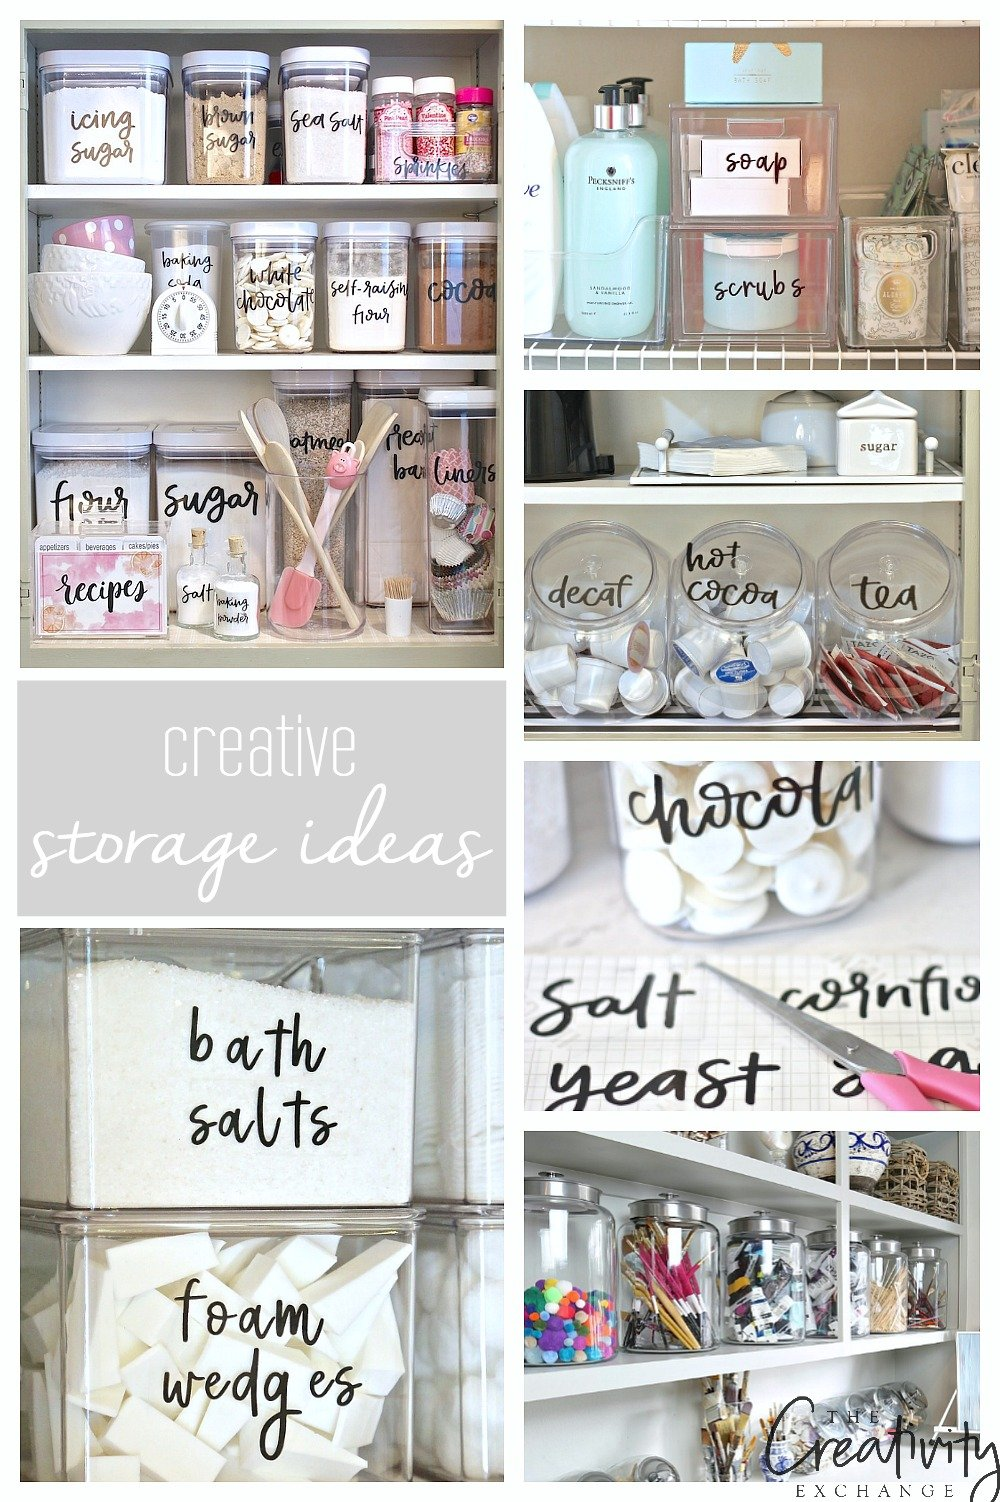 Big impact creative storage ideas